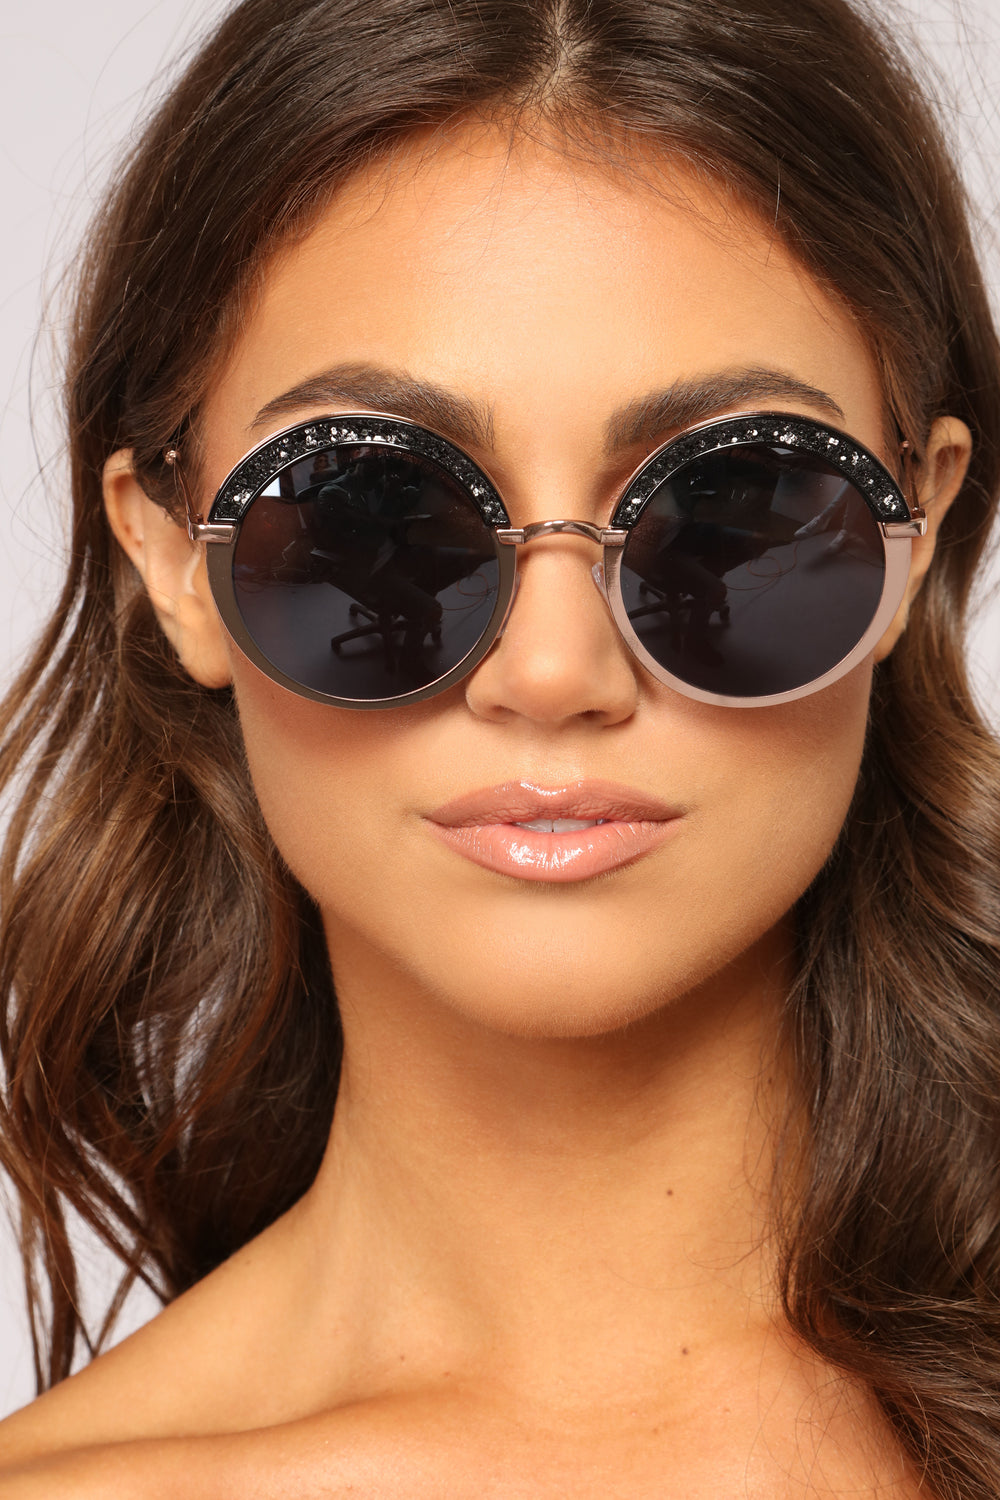 Sprinkle Me With Glitter Sunglasses - Copper